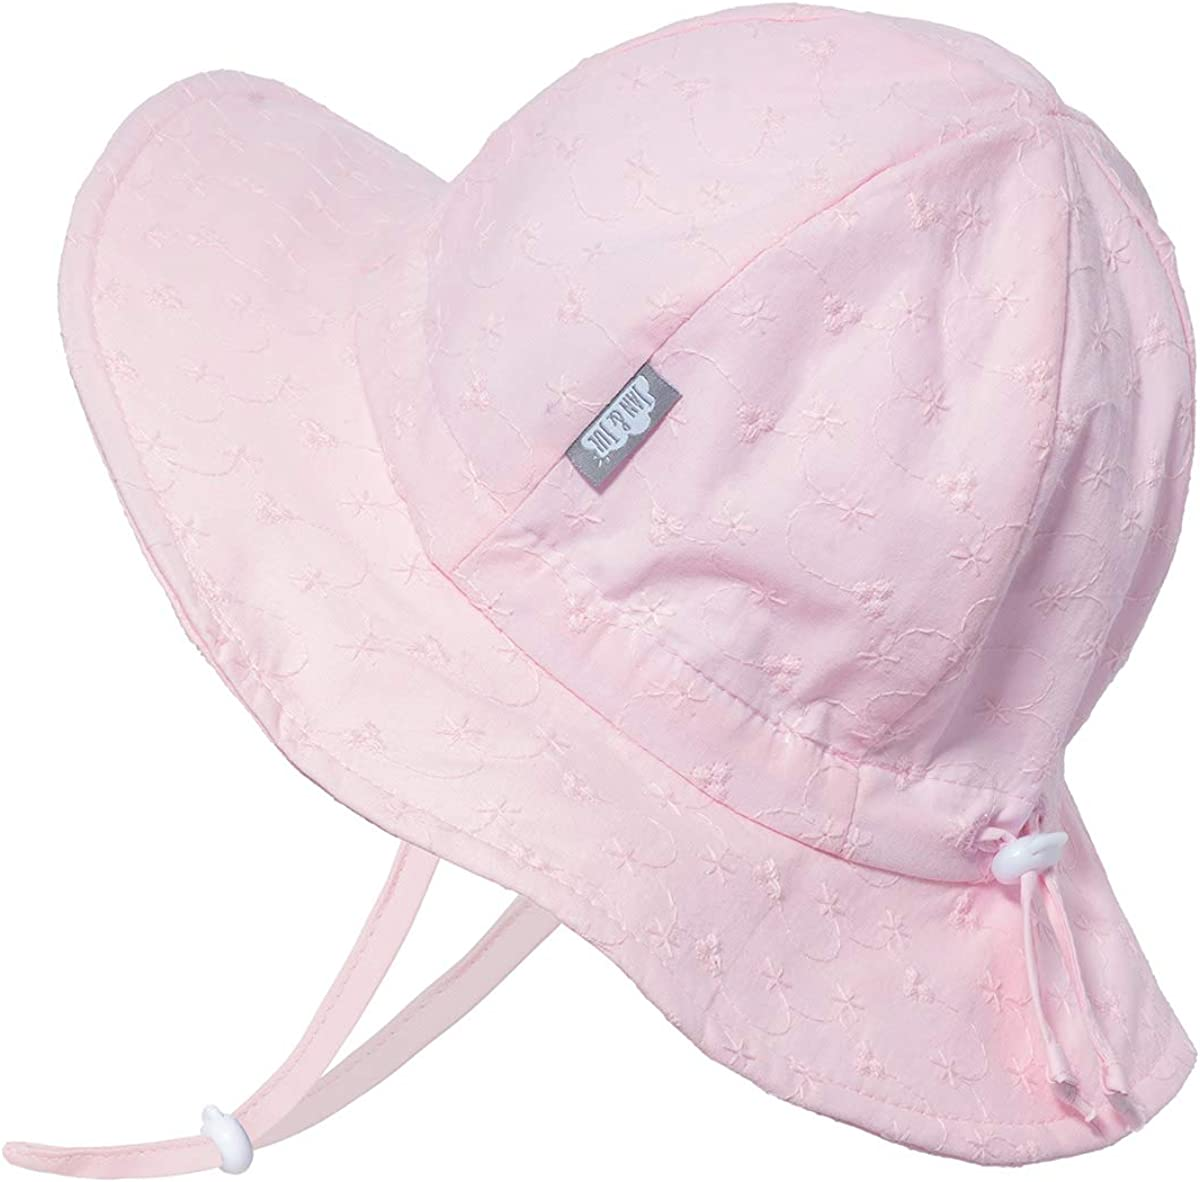 JAN /& JUL GRO-with-Me Cotton Floppy Adjustable Sun-Hat for Girls Breathable Cotton UPF 50